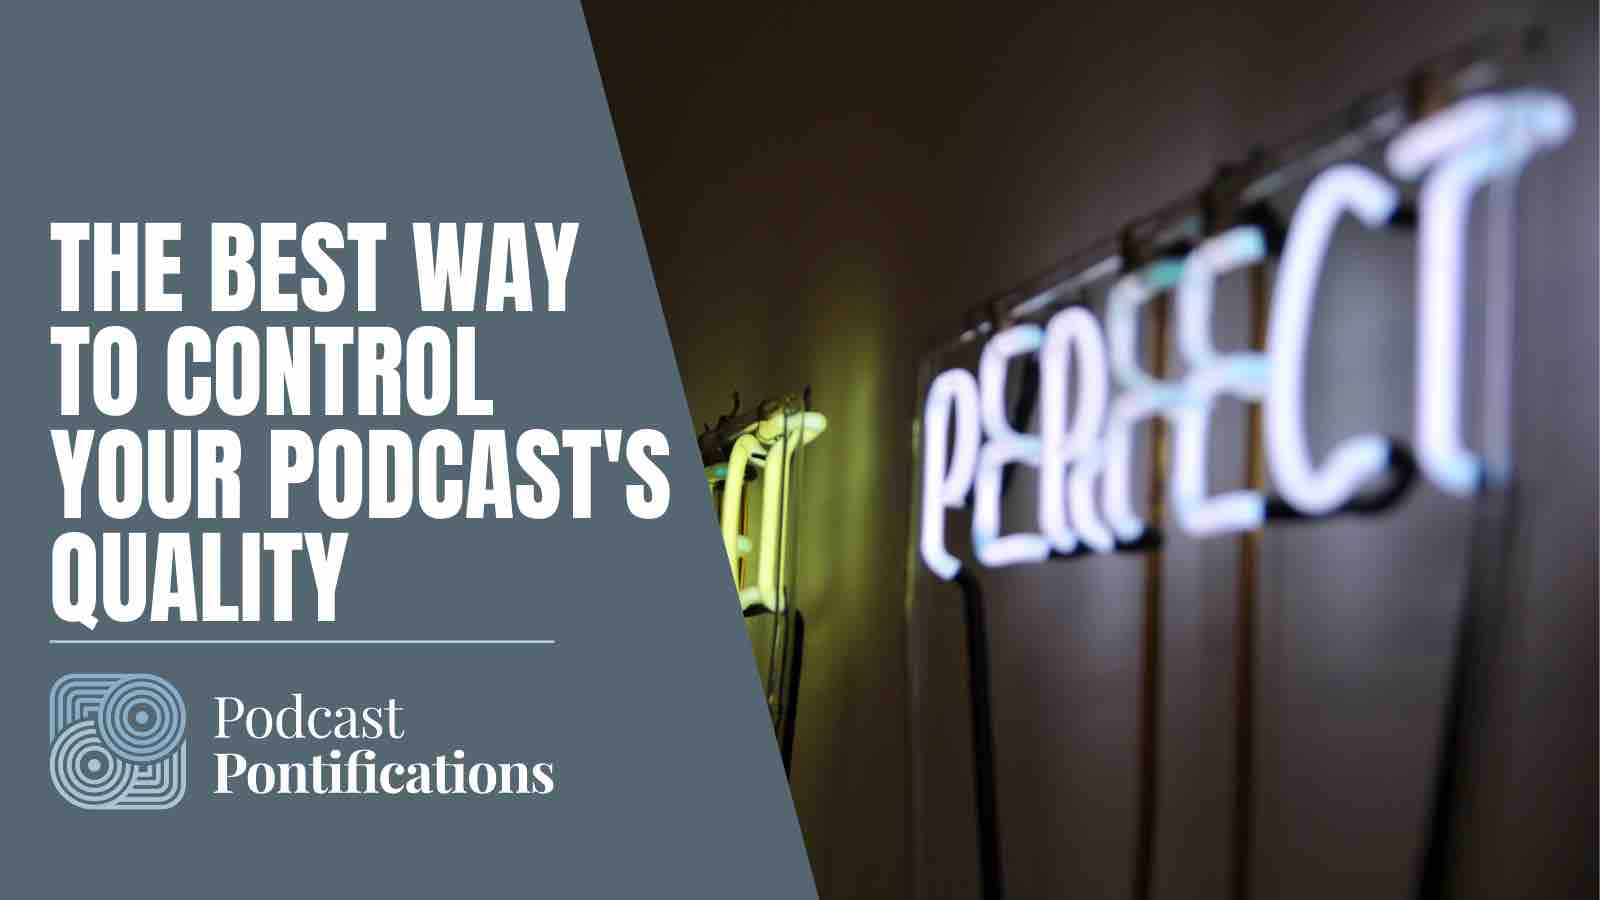 The Best Way To Control Your Podcast's Quality